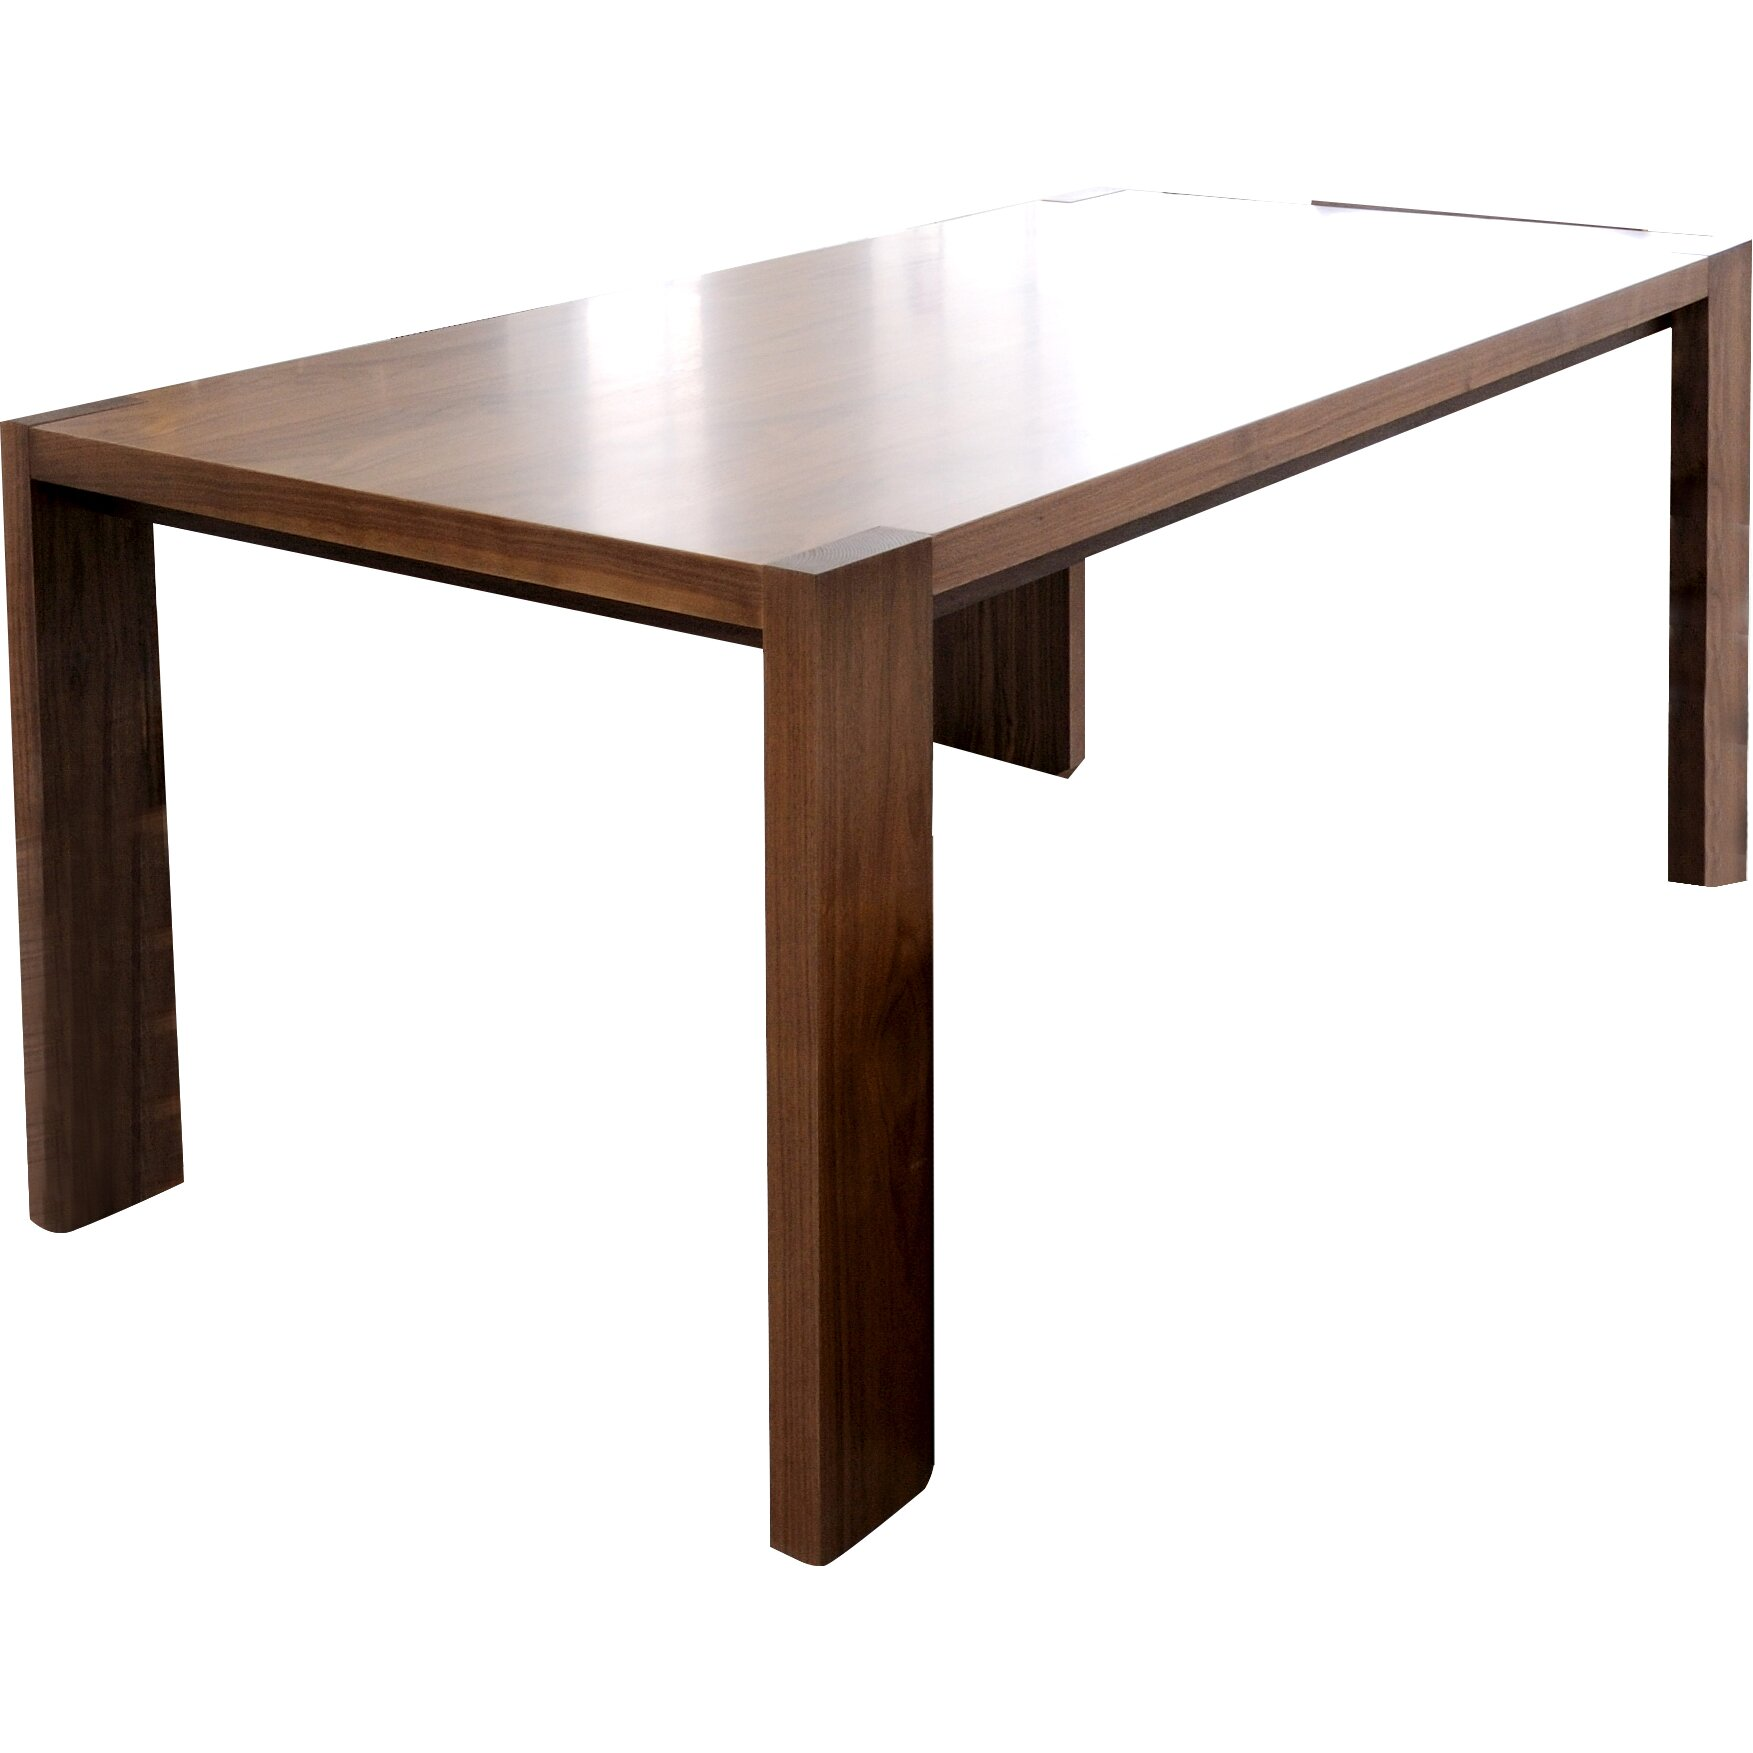 Gus modern plank dining table reviews wayfair for Regulation 85 table a